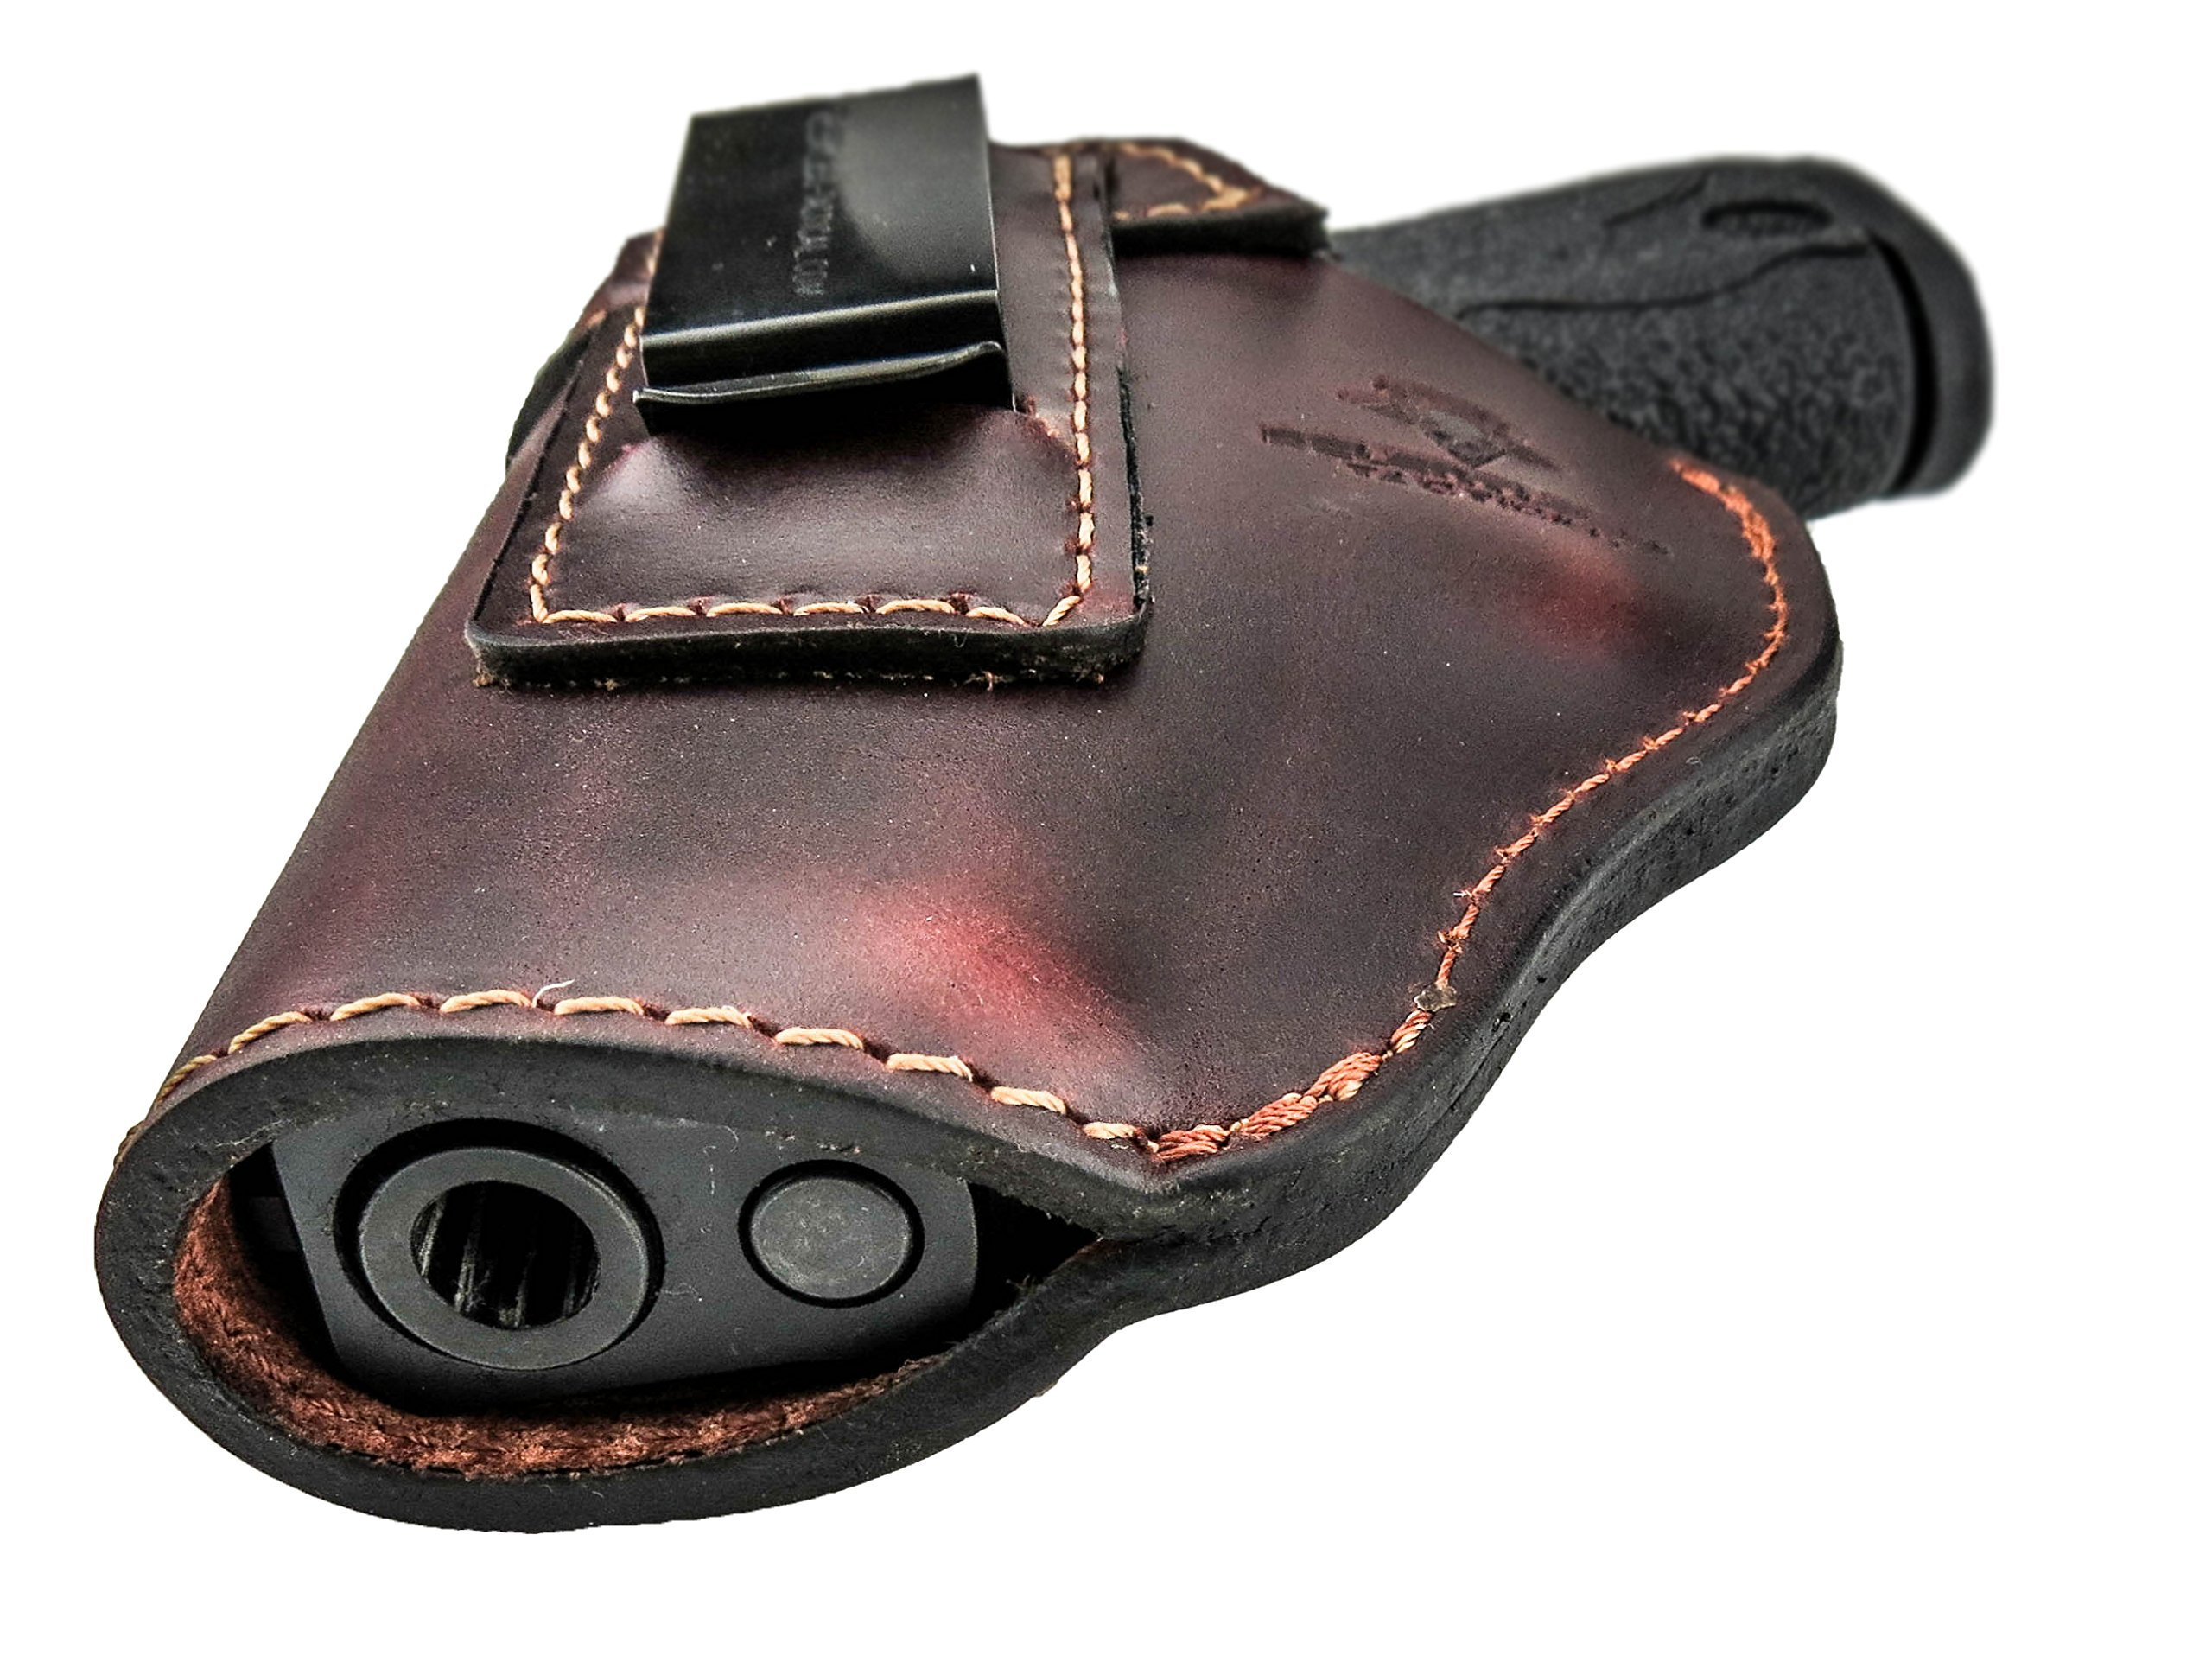 Relentless Tactical The Defender Leather IWB Holster - Made in USA - for S&W M&P Shield - Glock 17 19 22 23 32 33 / Springfield XD & XDS/Plus All Similar Sized Handguns – Brown – Left Handed by Relentless Tactical (Image #5)